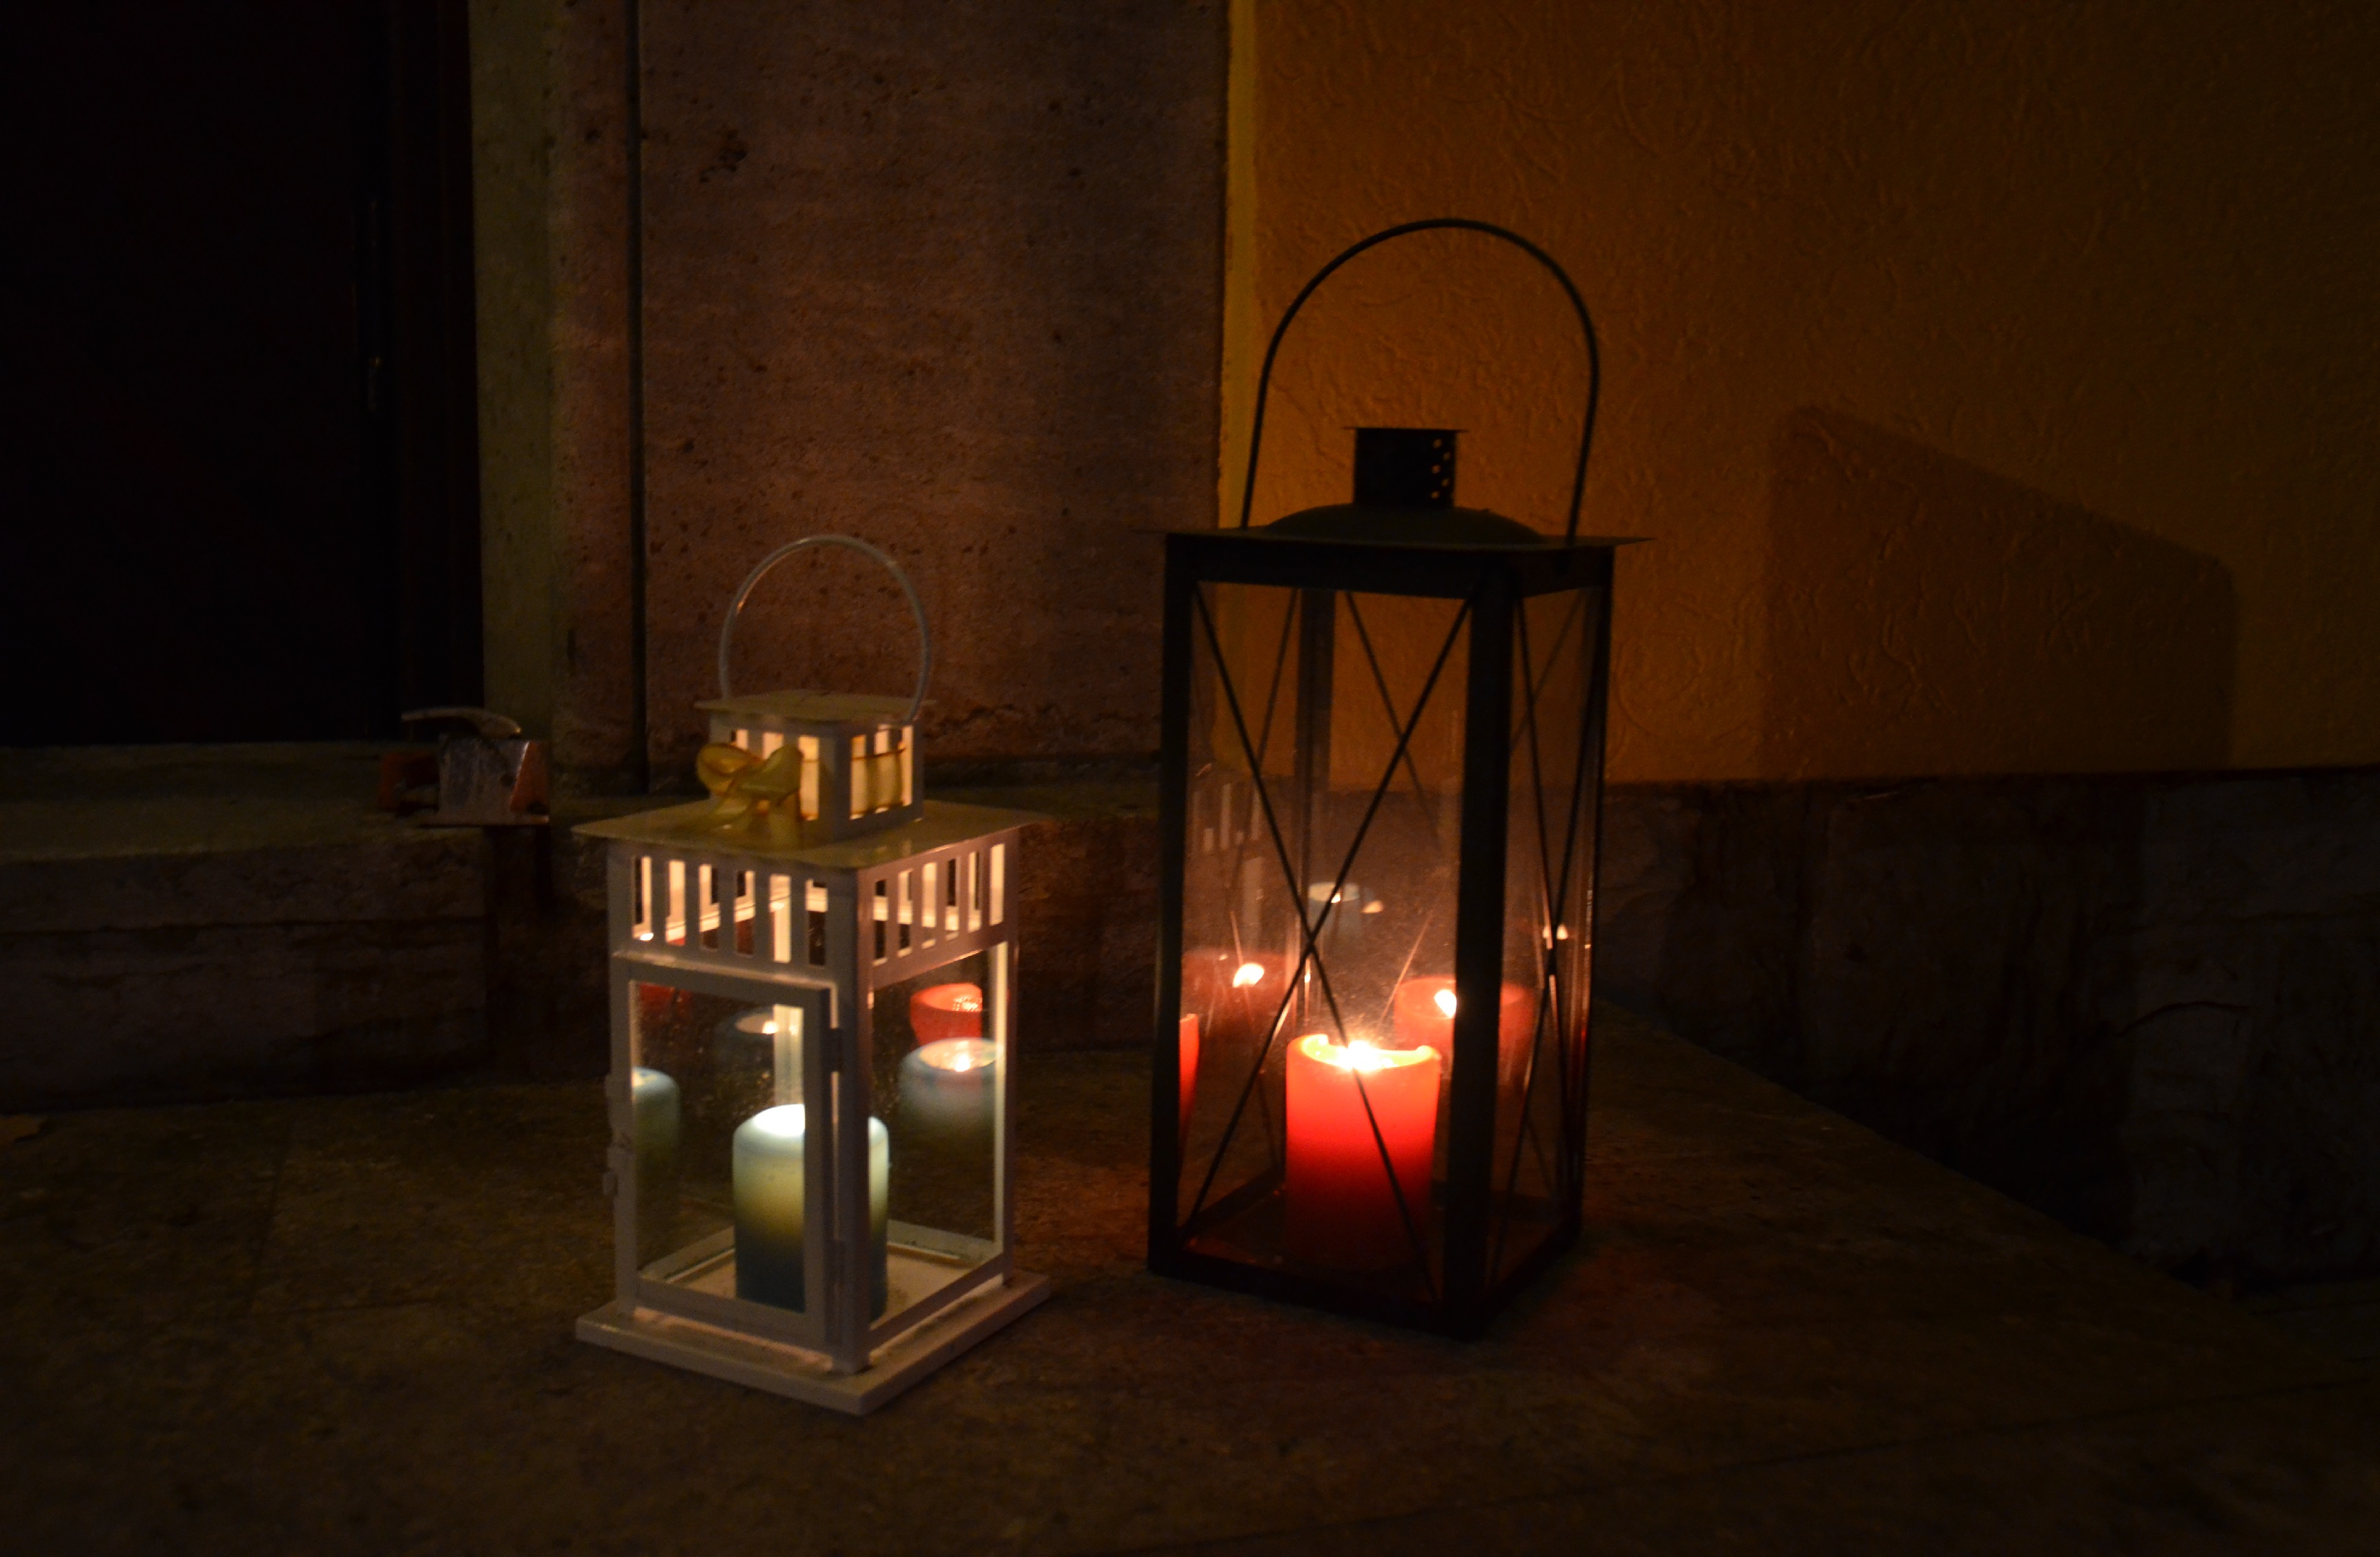 Candles at night (Photo: Bianca Sowders)